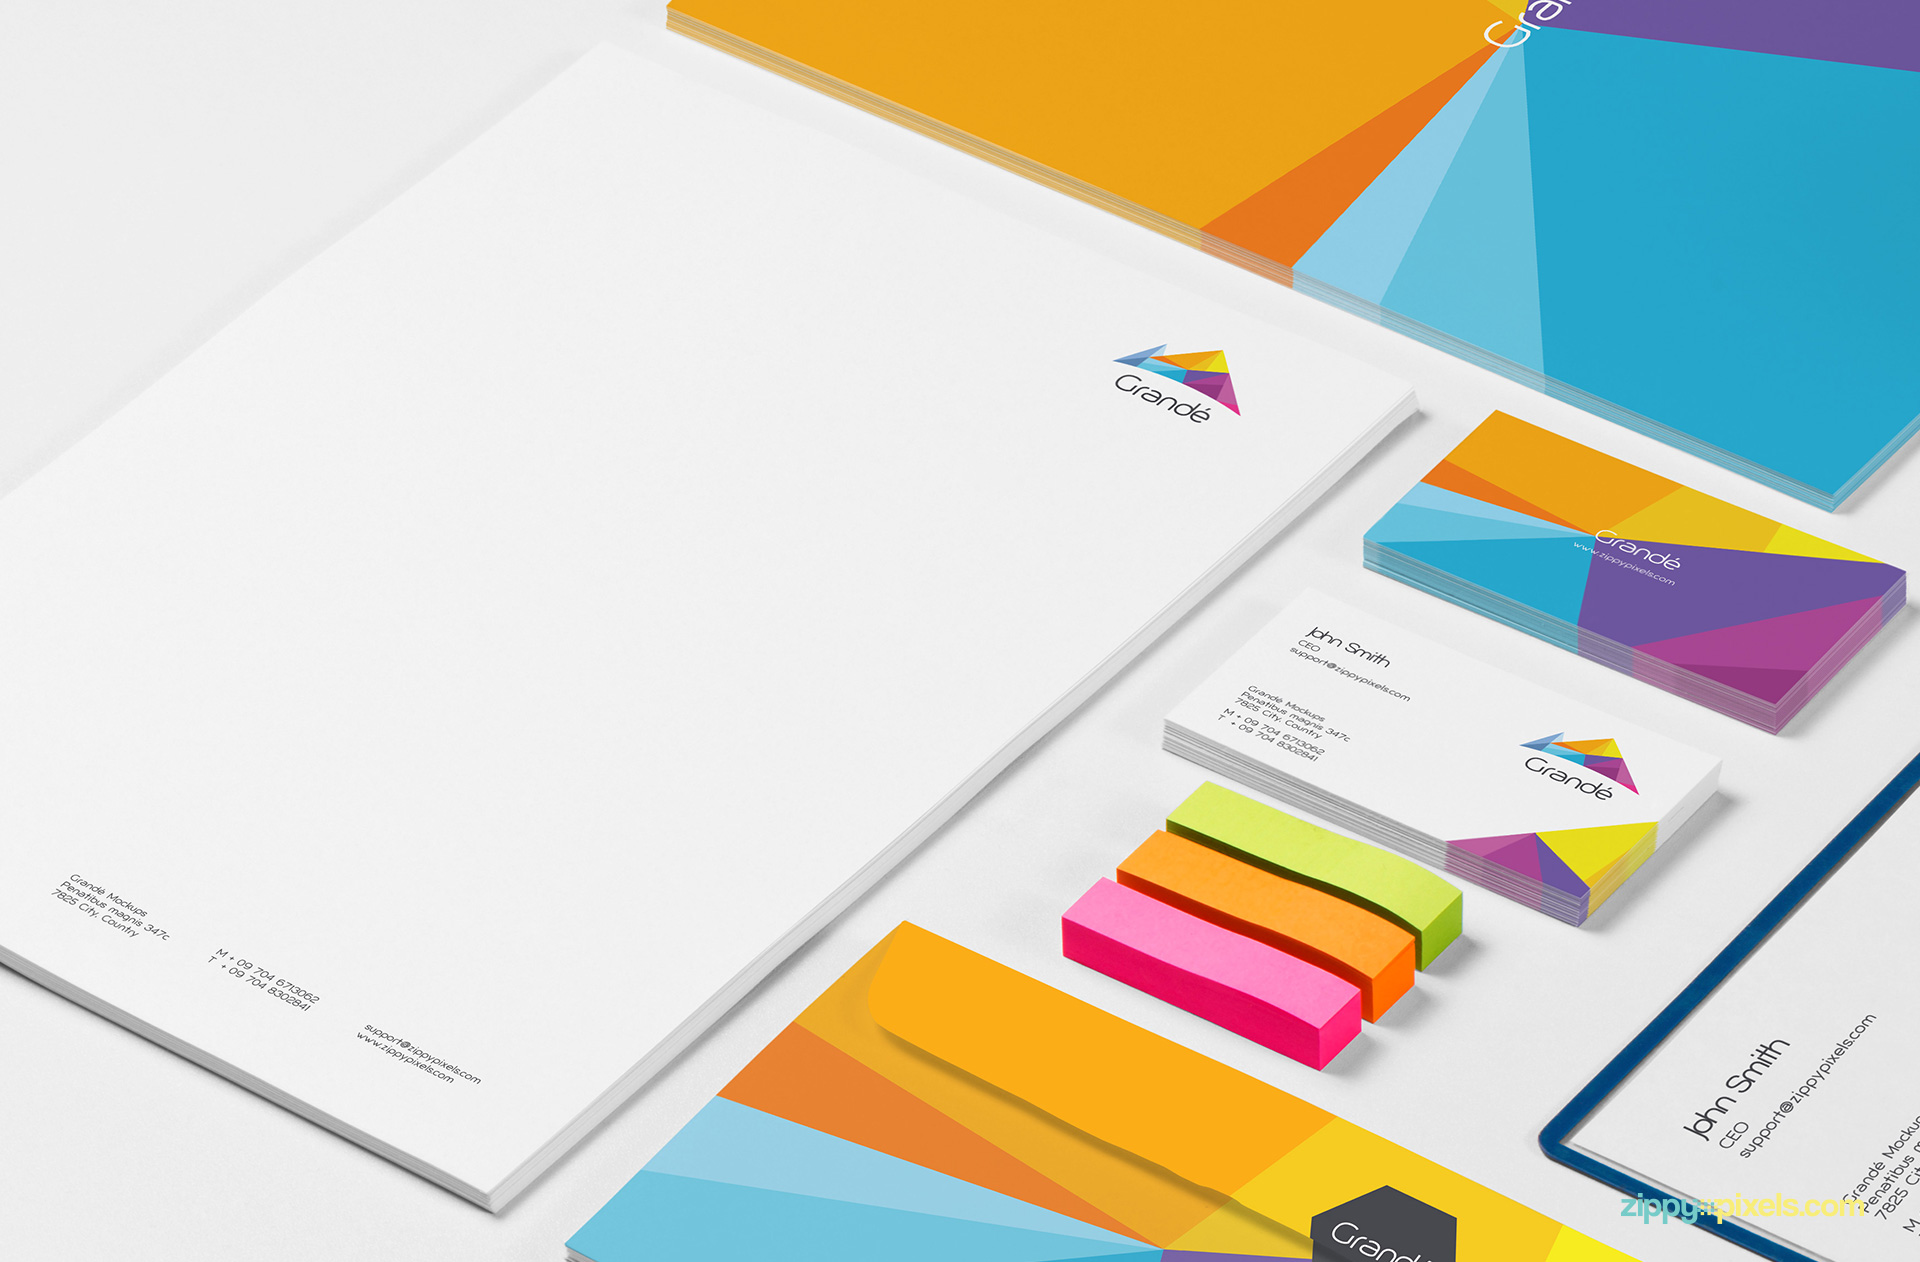 free 8 photorealistic stationery psd mockups | zippypixels, Powerpoint templates